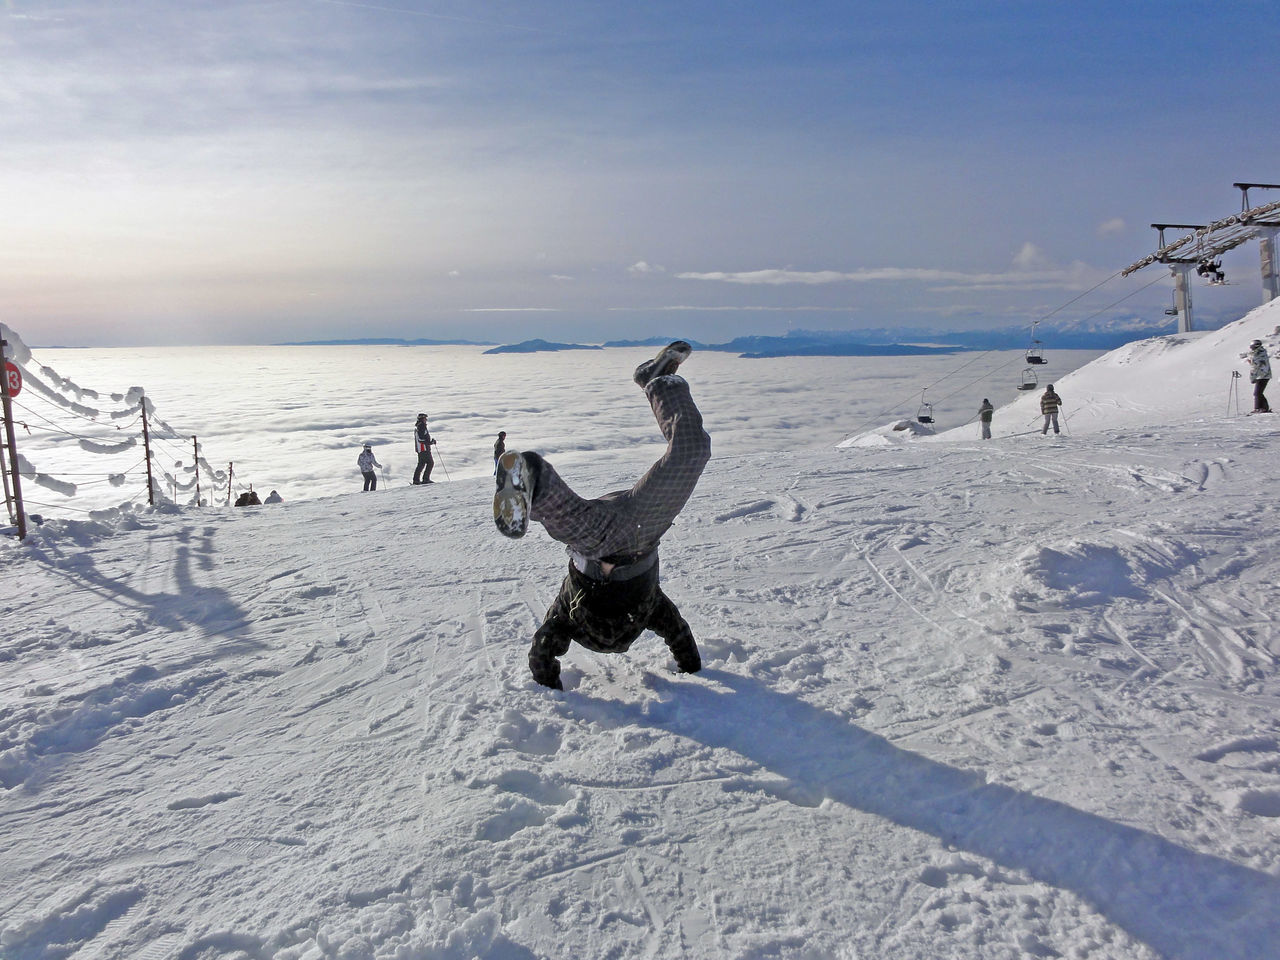 Snowboarders in action: a little acrobatics... Acrobatics  Day Extreme Sports Happy Motion Outdoors Ski Holiday Snow Snow Sports Snowboard Snowboarding Sport Travel Destinations Winter Winter Sport